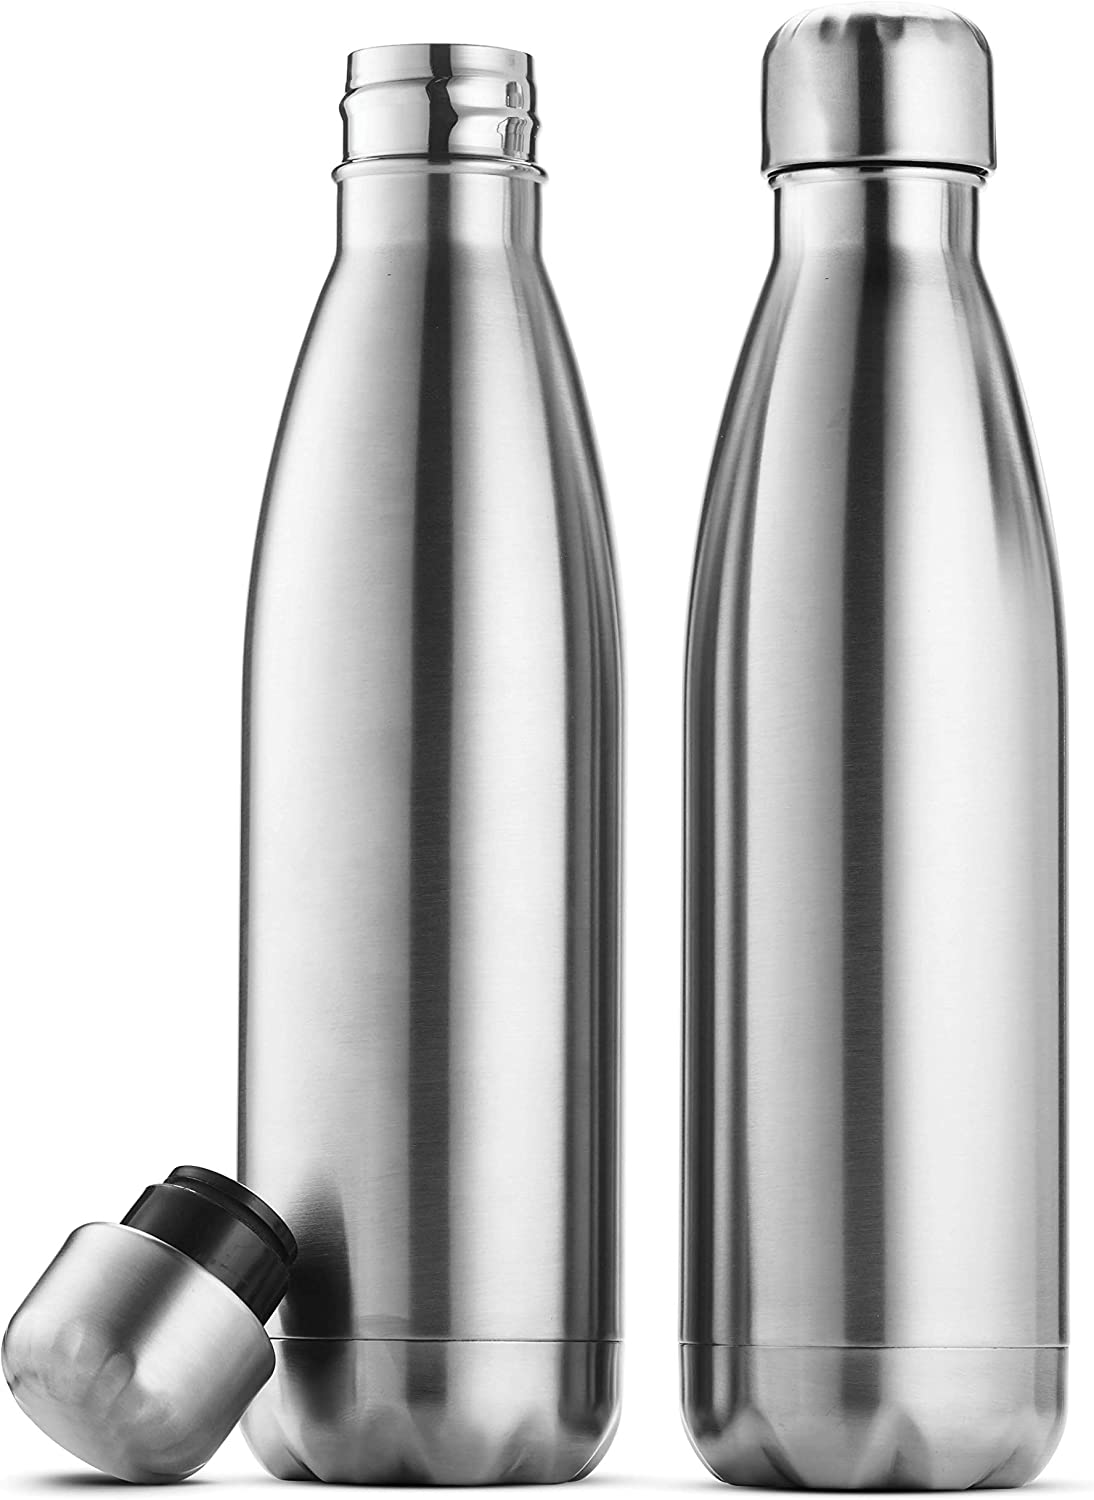 Triple Insulated Stainless Steel Water Bottle Set Of 2 17 Ounce Sleek Insulated Water Bottles Keeps Hot And Cold 100 Leakproof Lids Sweat Proof Water Bottles Great For Travel Picnic Camping